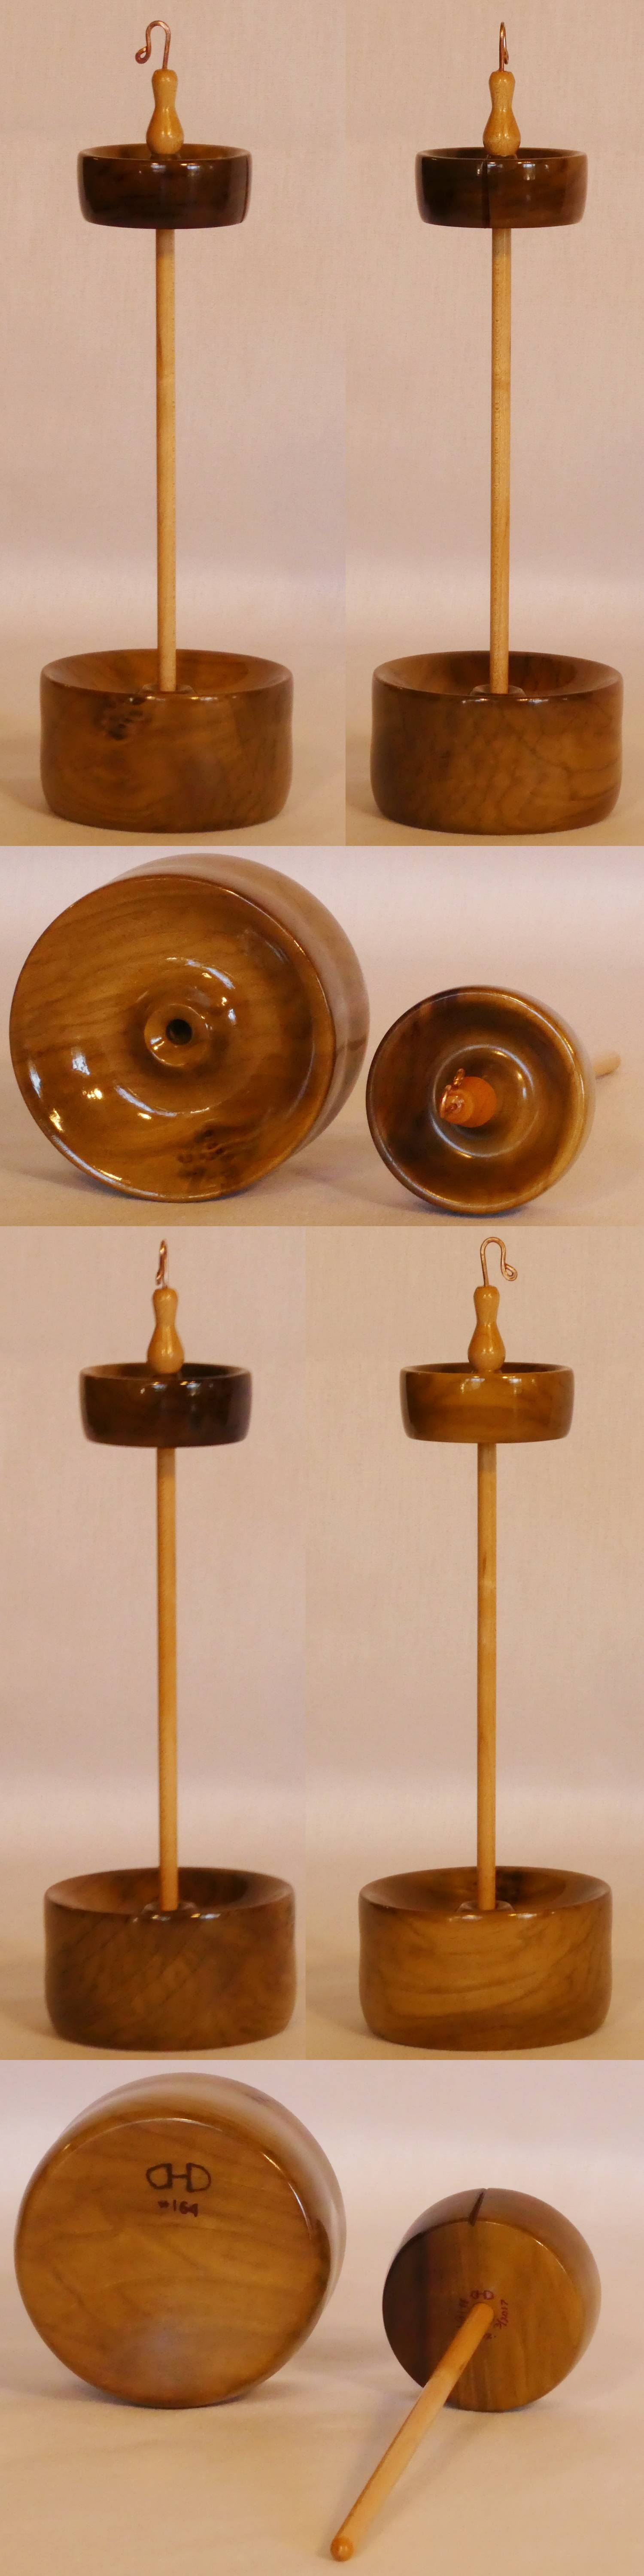 Handcrafted top whorl drop spindle in a display stand, hand turned from Tulip Poplar and Maple wood by Cynthia D. Haney.